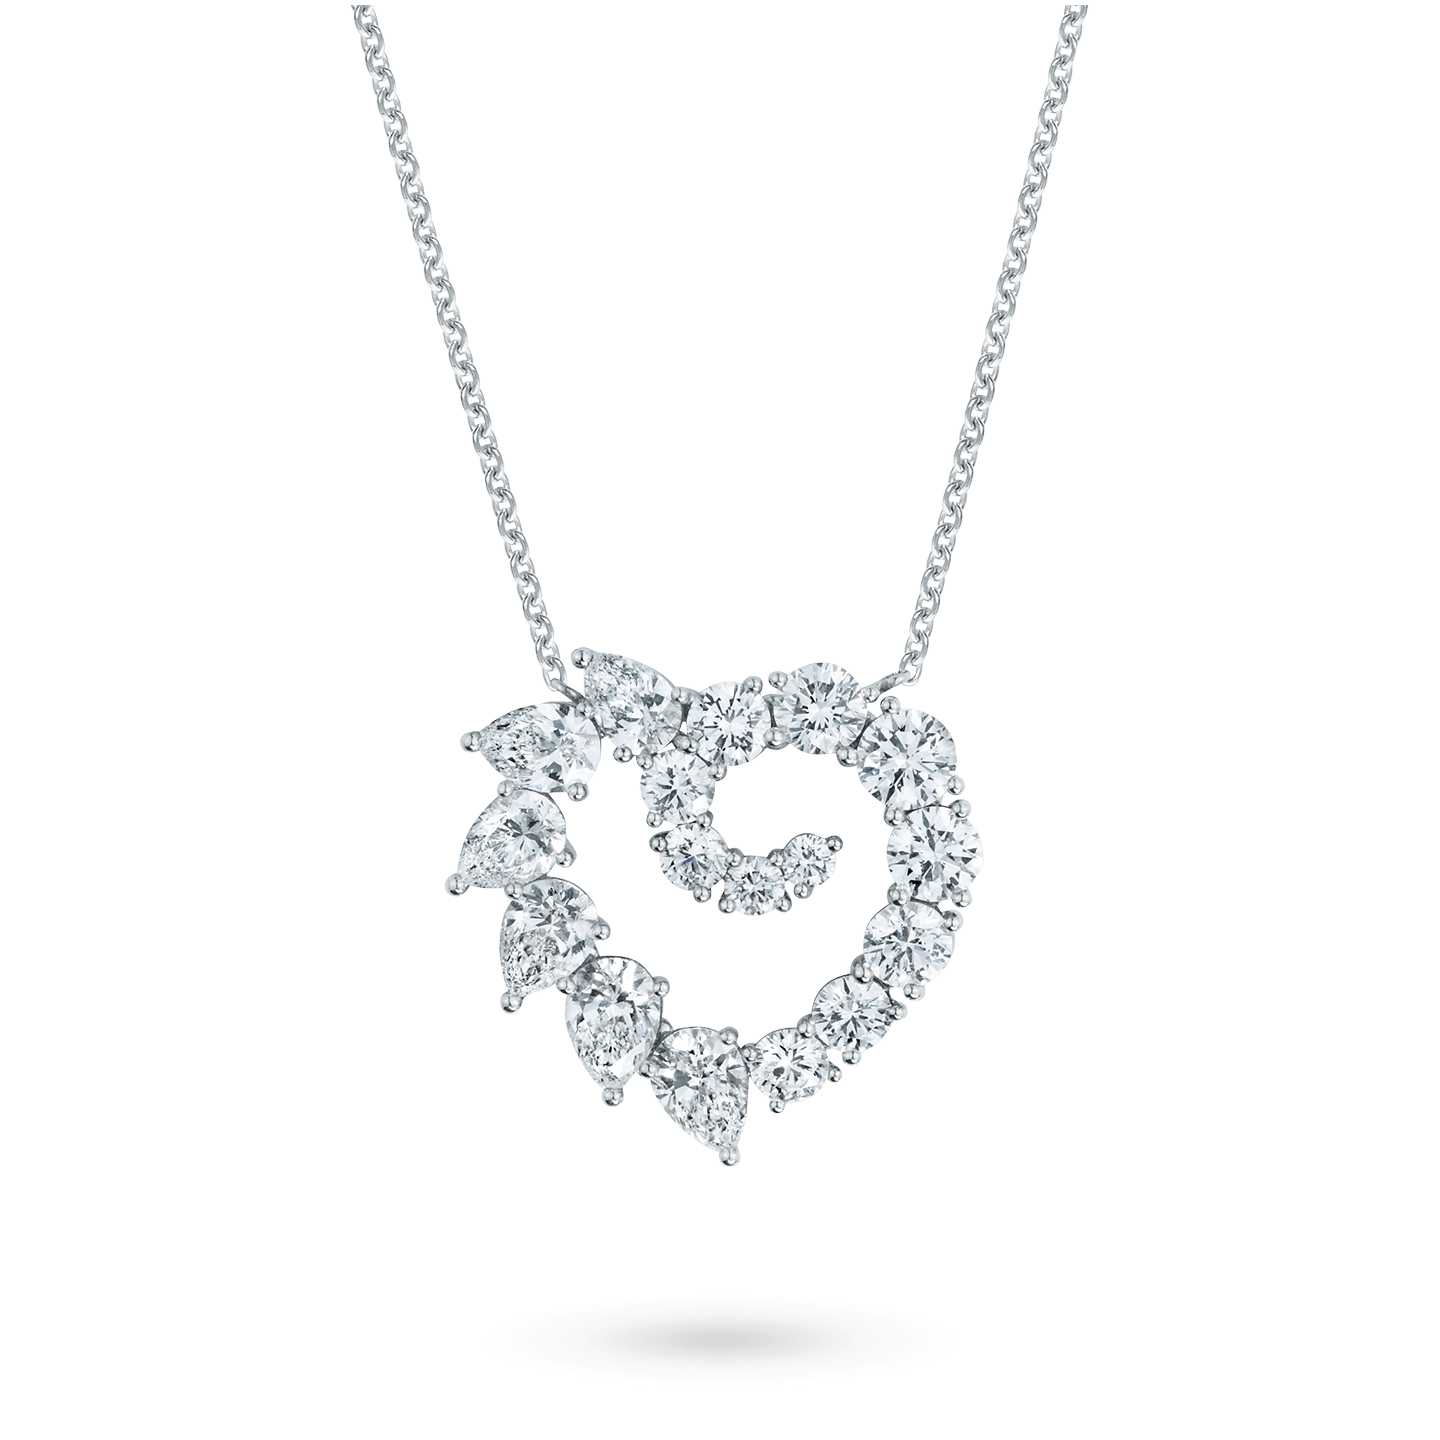 Garland Large Heart Diamond Pendant, Product Image 1